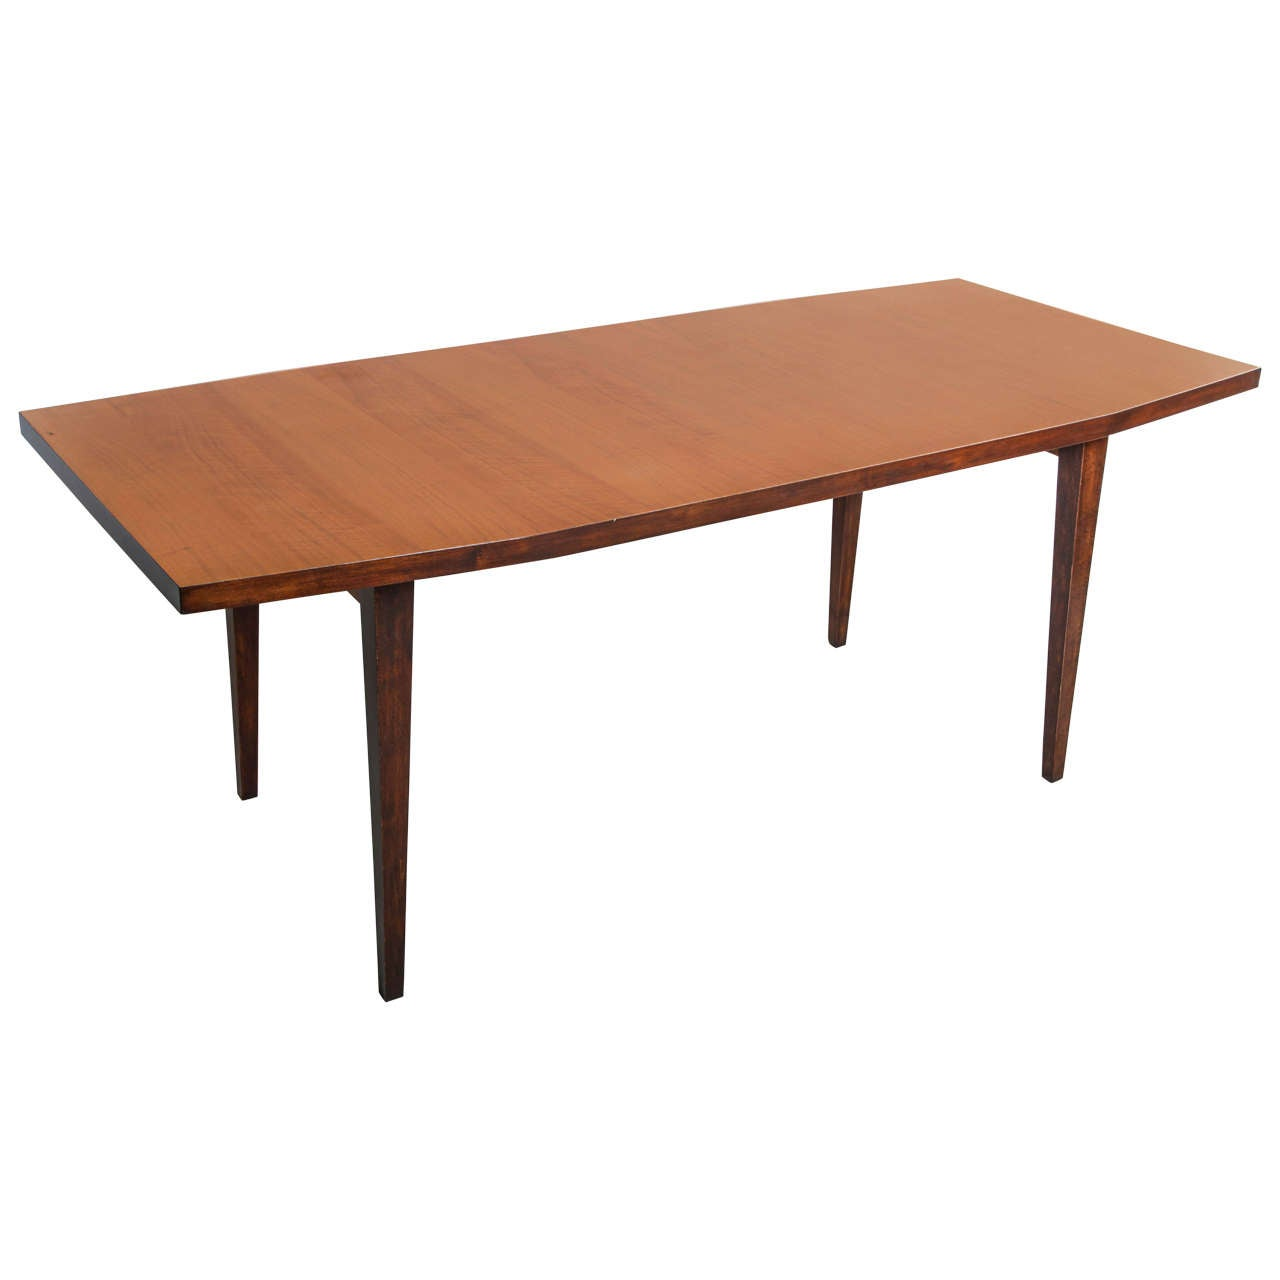 Extra long dining or conference table by kondor m bel for Long dining room table